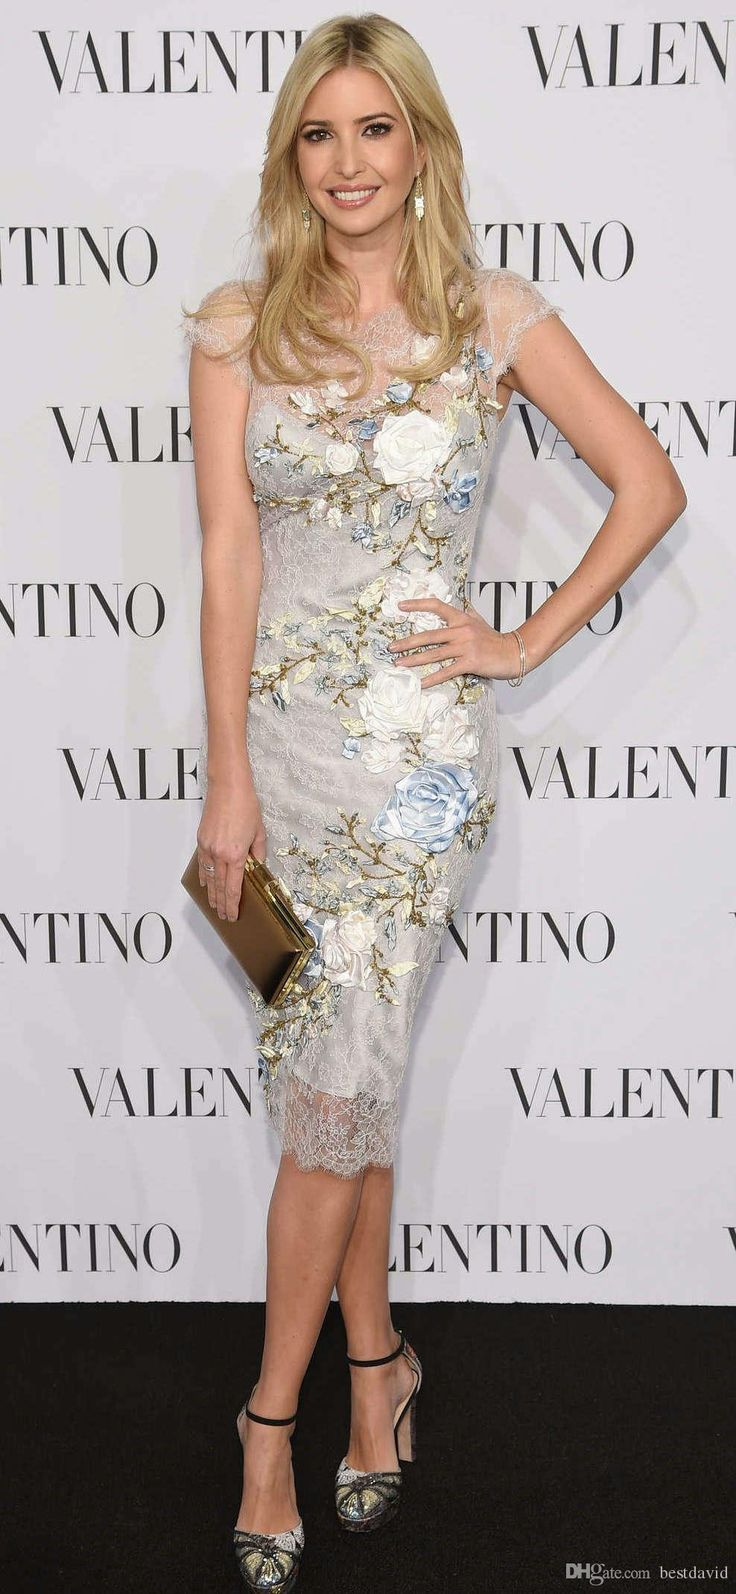 Ivanka Trump Beaded 3d Floral Appliques Short Celebrity Dresses 2017 Sheer Jewel Neck Cap Sleeves Handmate Flowers Sheath Evening Gown Shopping Dresses Online And Dresses Online From Bestdavid, $125.63| Dhgate.Com